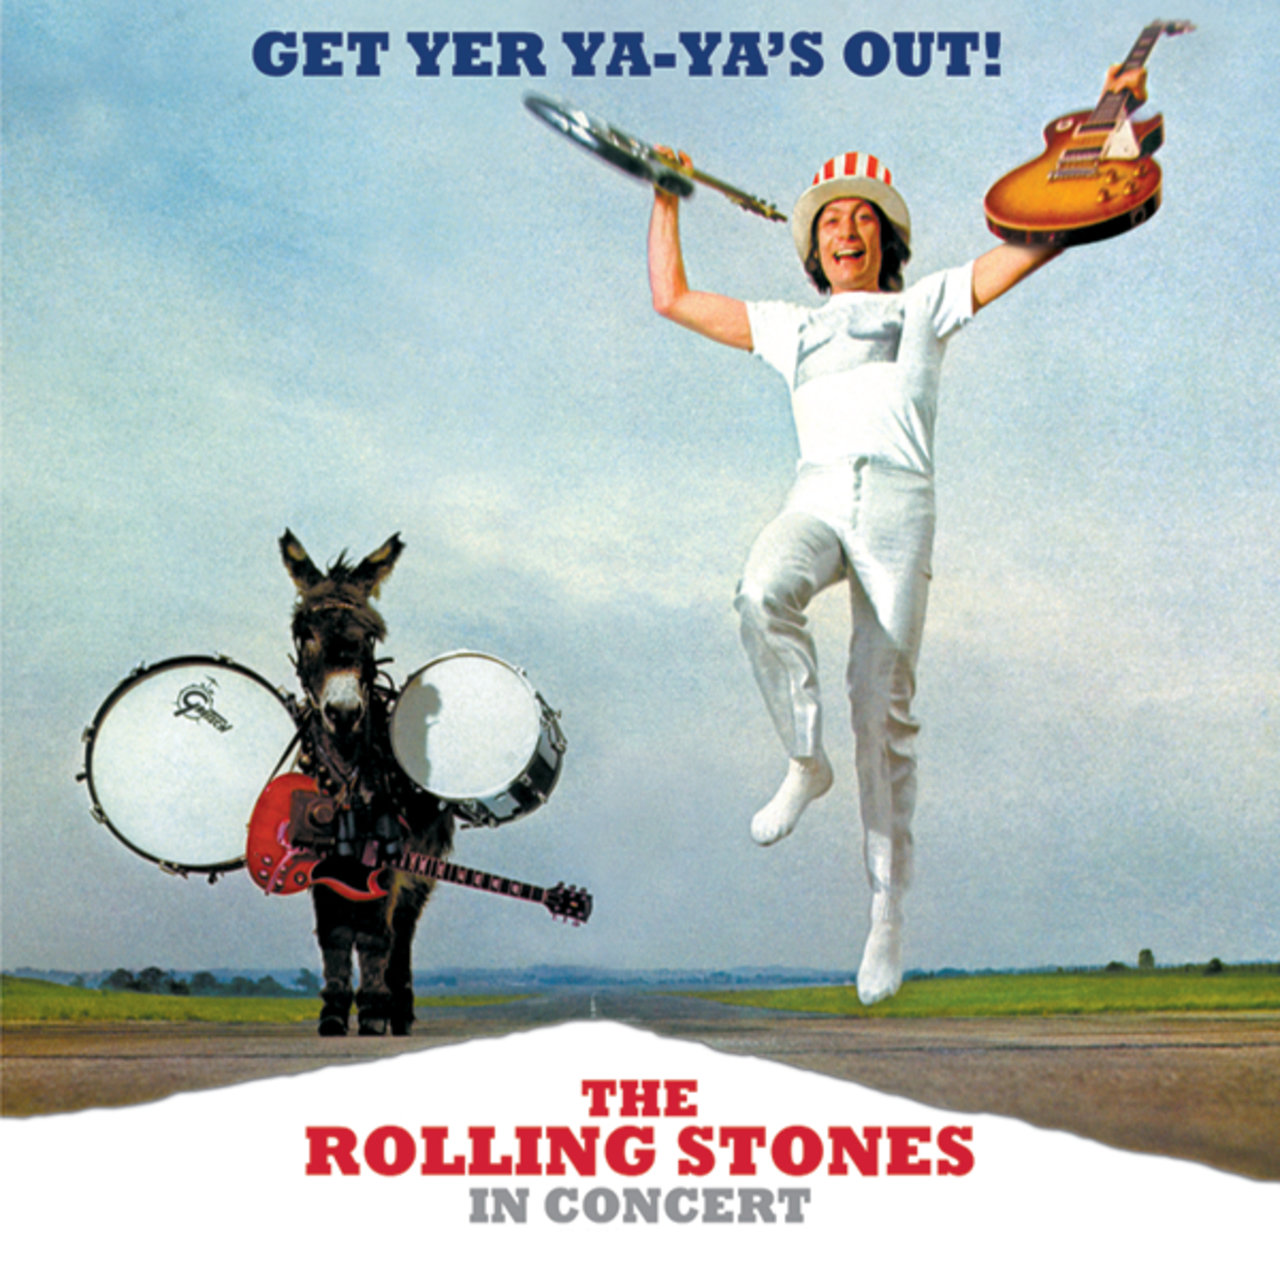 Get Yer Ya-Ya's Out! - Deluxe (40th Anniversary Deluxe Version)